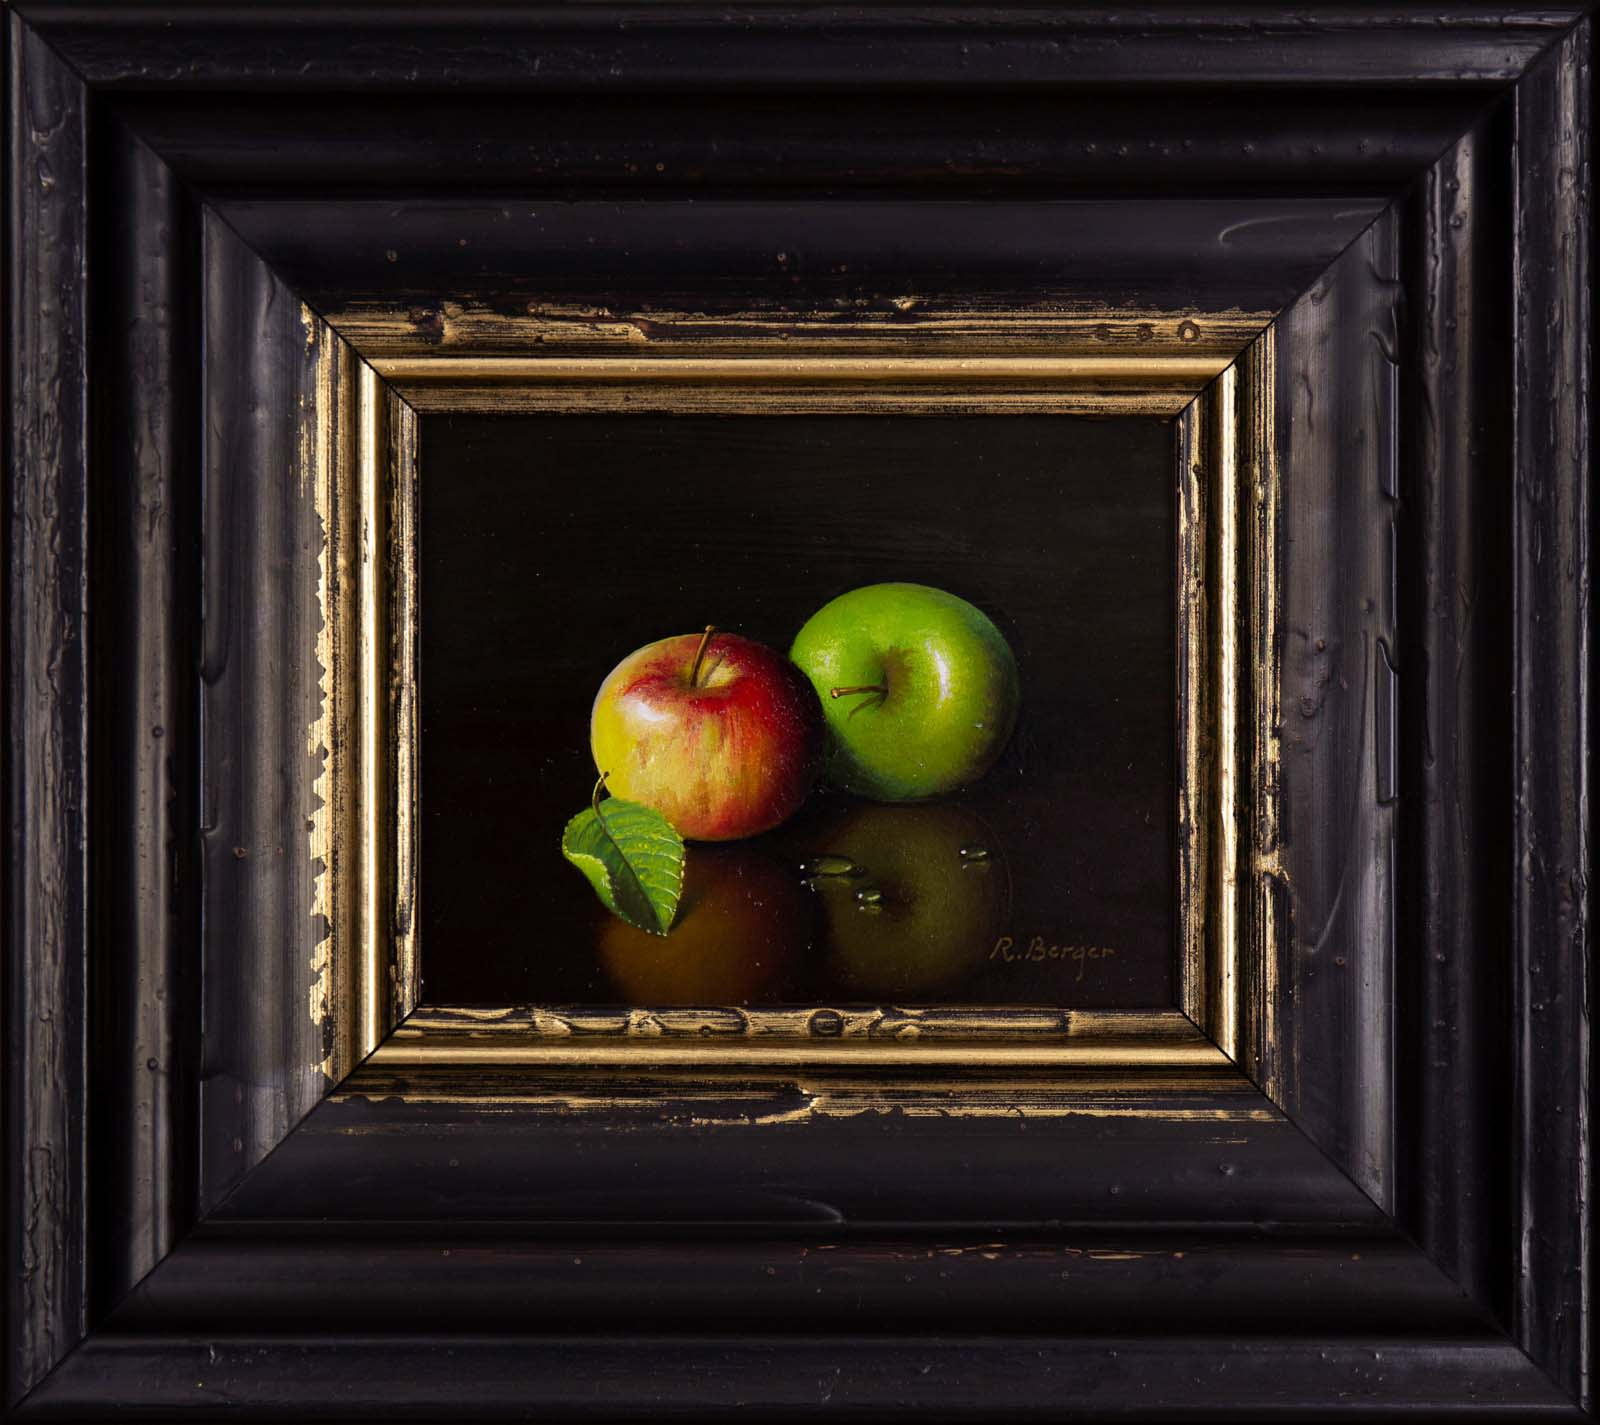 Pair of Apples, Ronald Berger